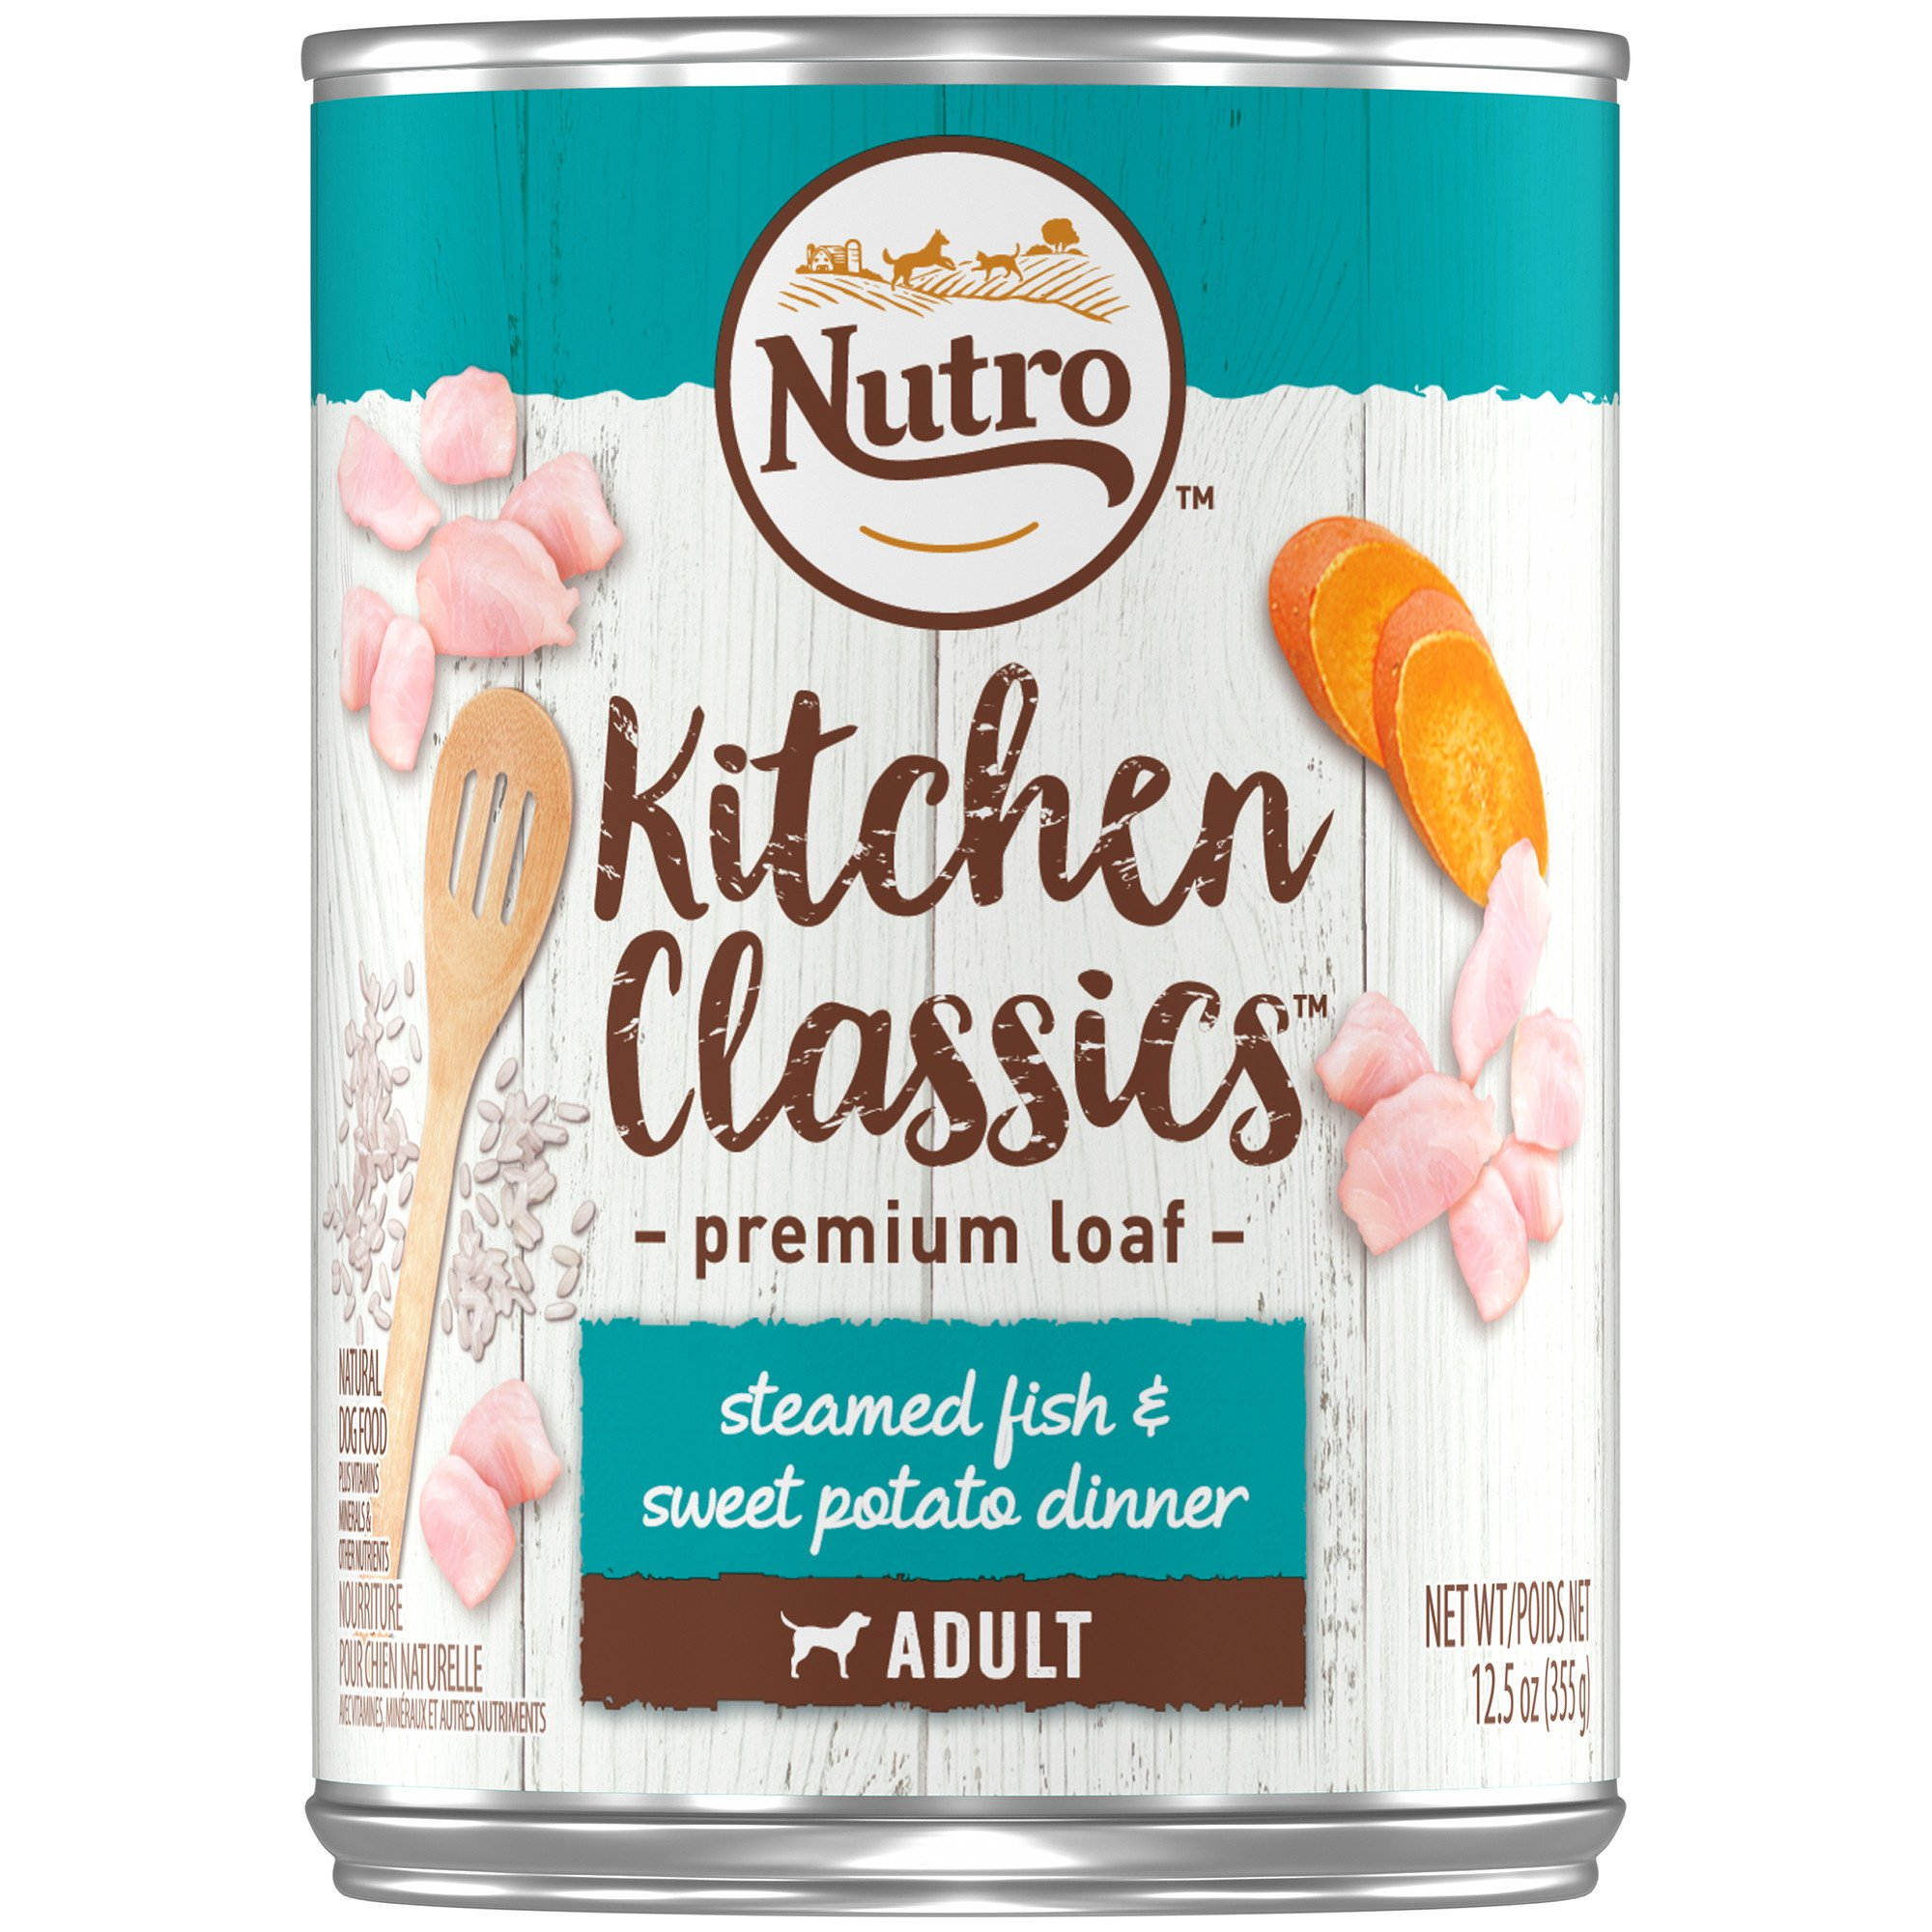 Nutro Kitchen Classics Steamed Fish & Sweet Potato Dinner Premium Loaf  Canned Dog Food Recipe | Petco